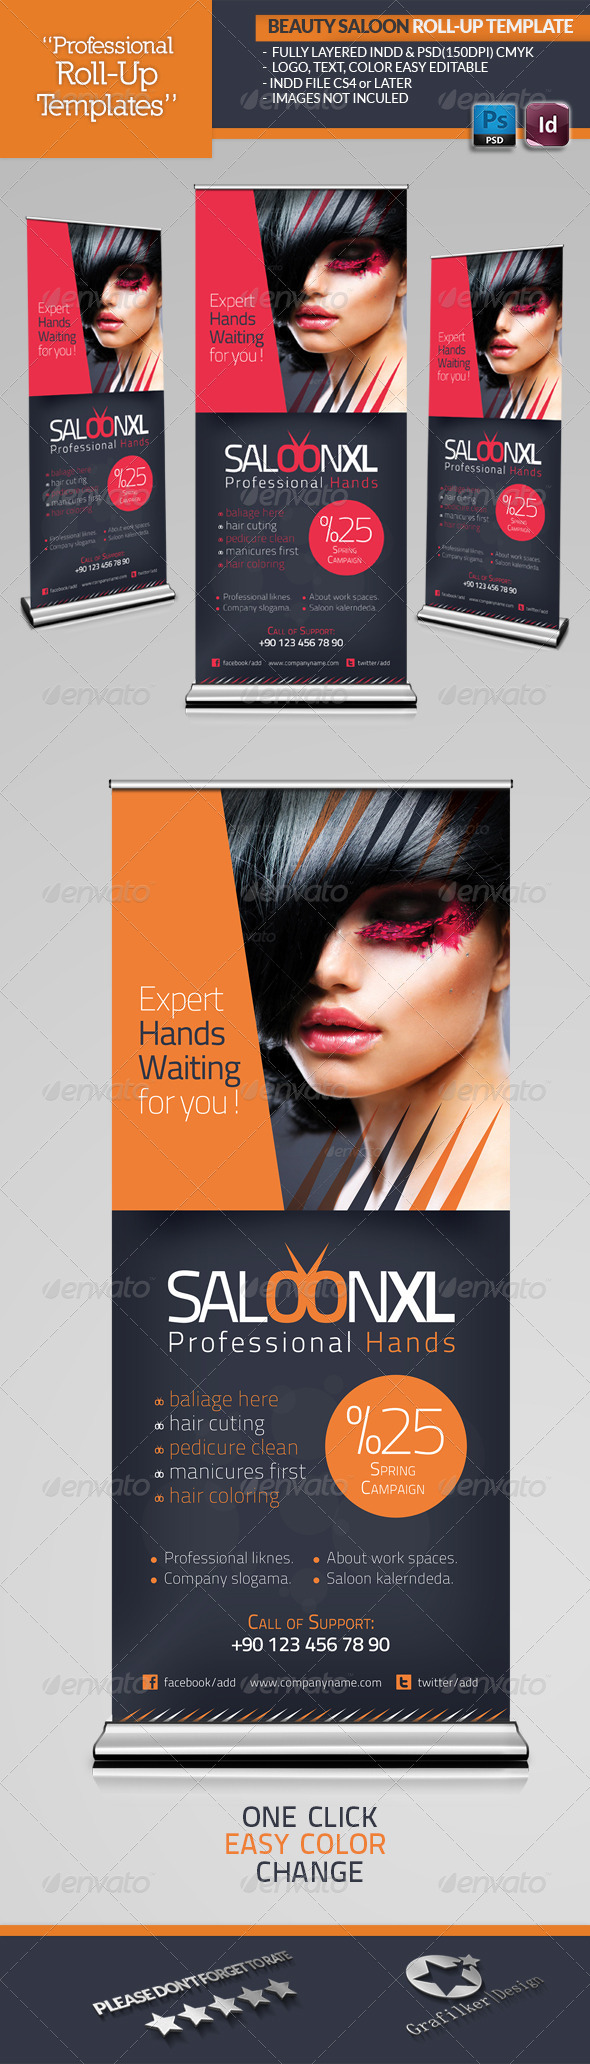 Beauty Saloon Roll-Up Template